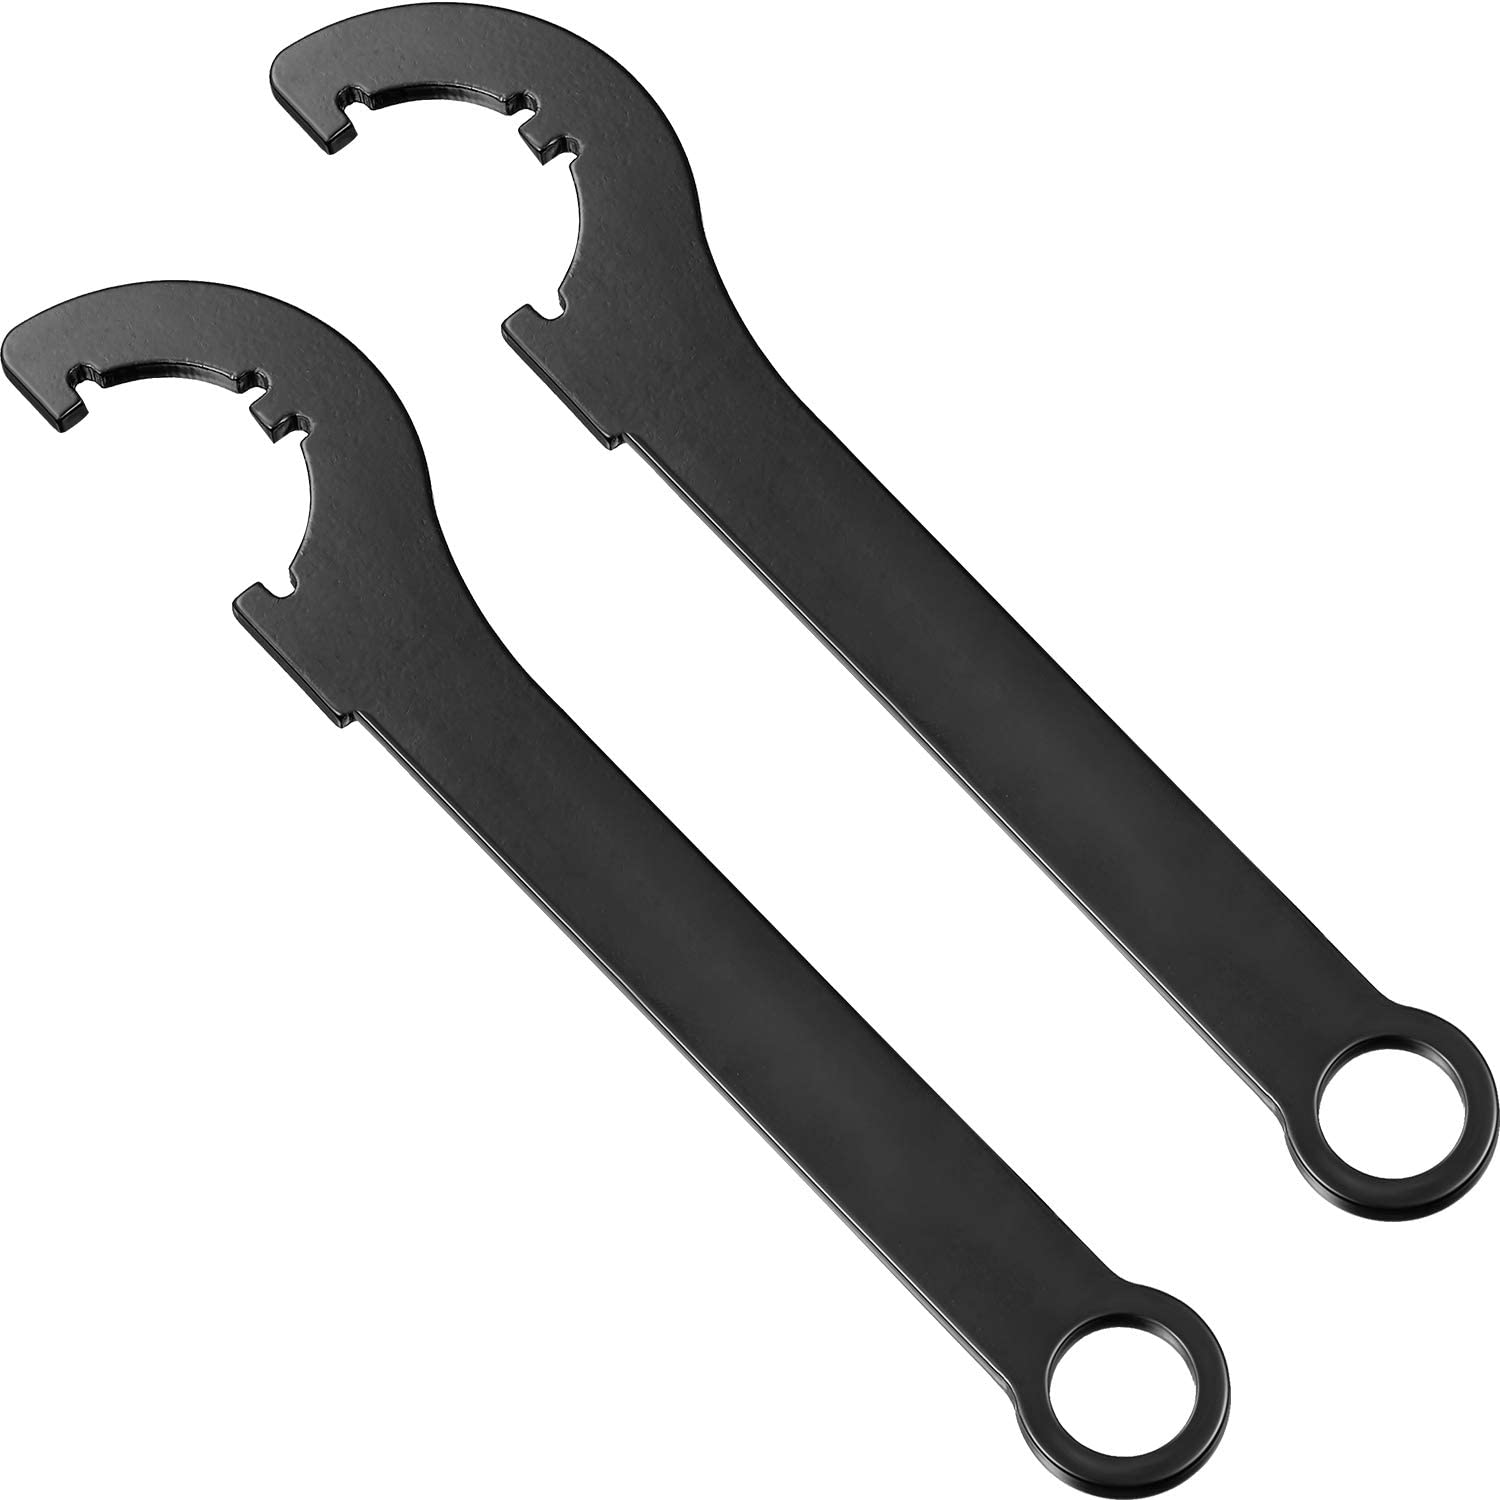 2 Pieces Survival Nut Wrench Spanner Nut Wrench Locknut Wrench C Spanner Hook Wrench Carbon Steel Survival Wrench Tool for Locknut Unscrew and Reinstall